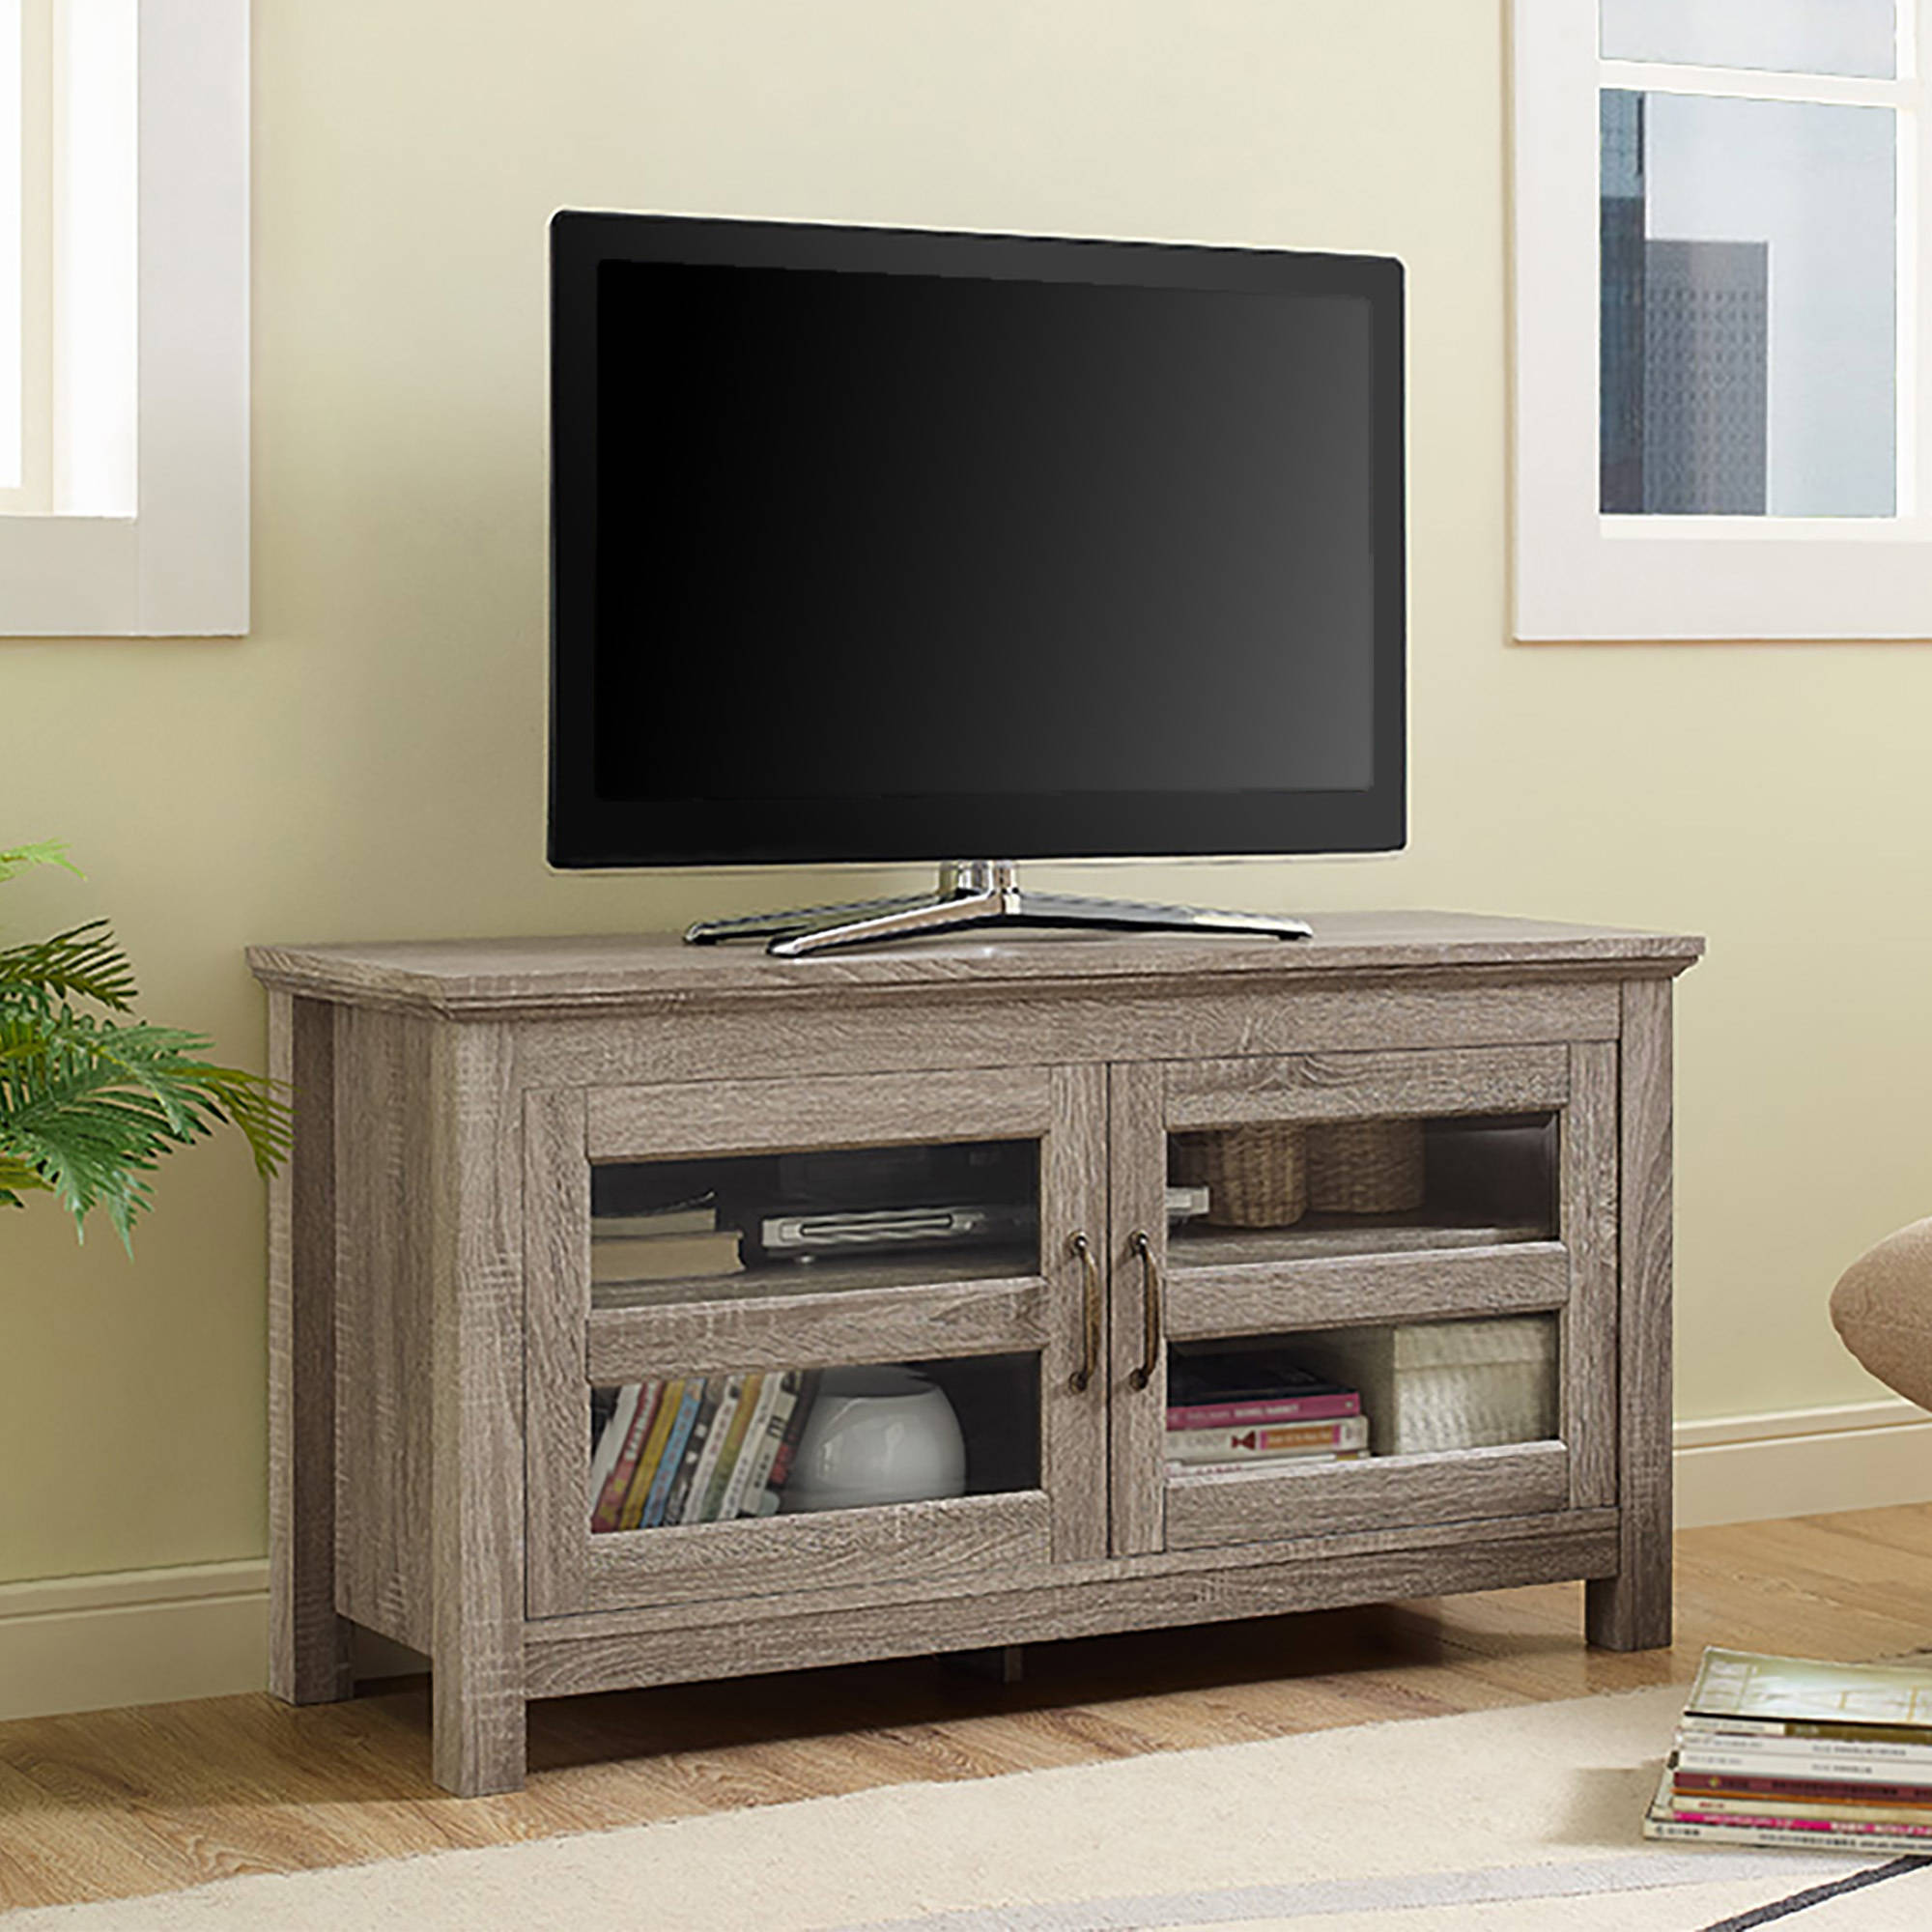 Driftwood TV Stand for TVs up to 48